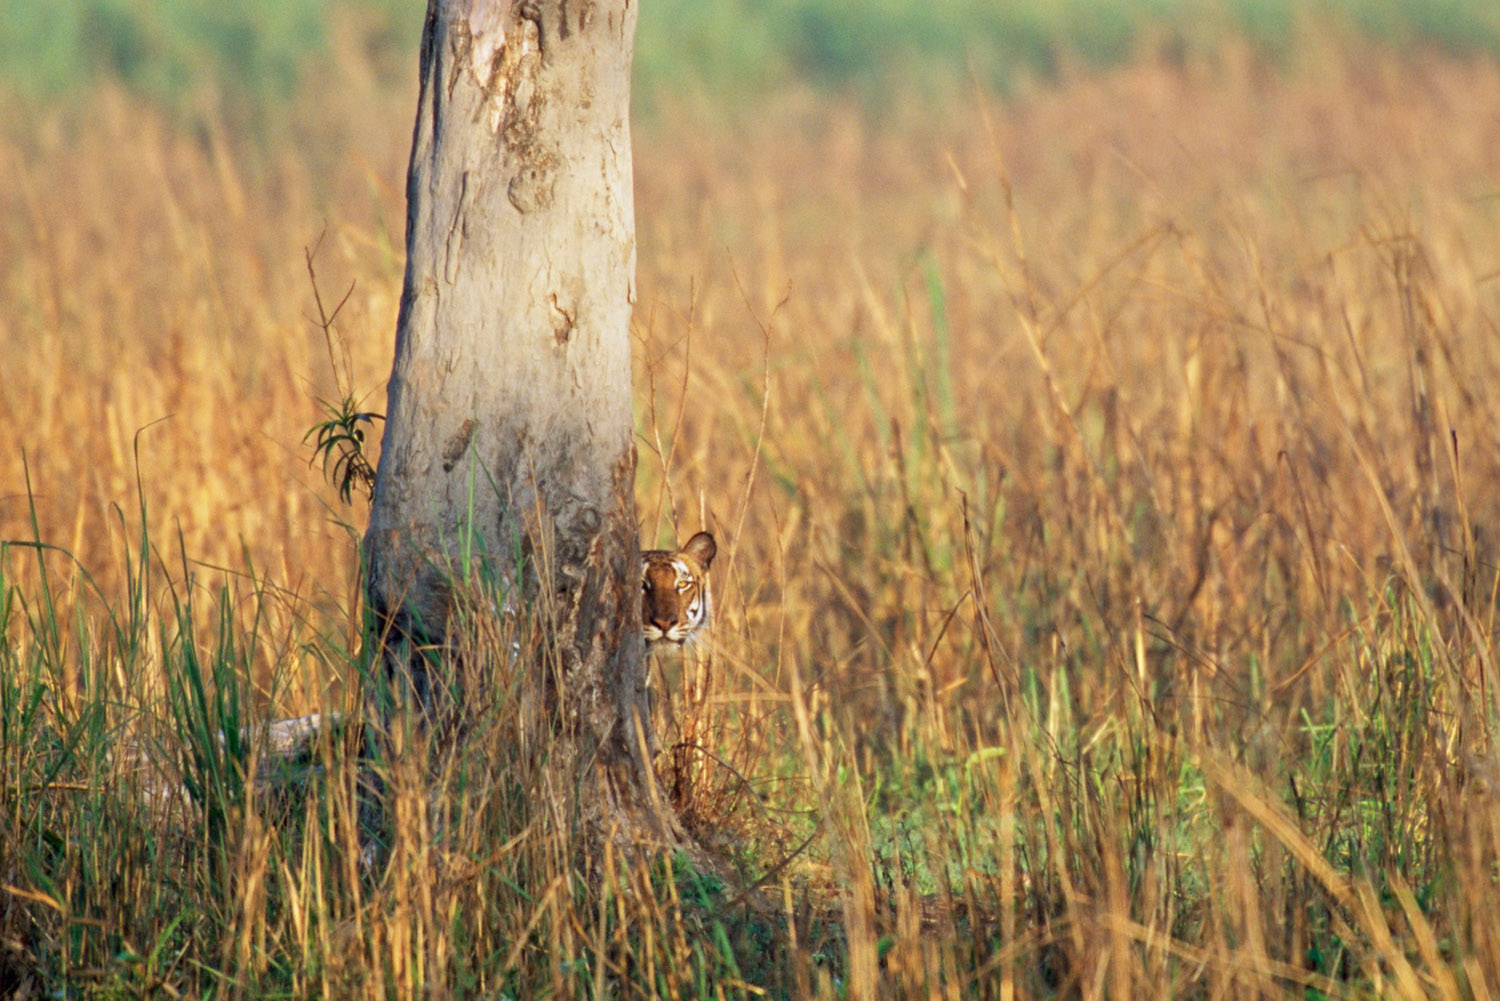 Bengal tiger looking around tree, Kaziranga National Park, Assam, India